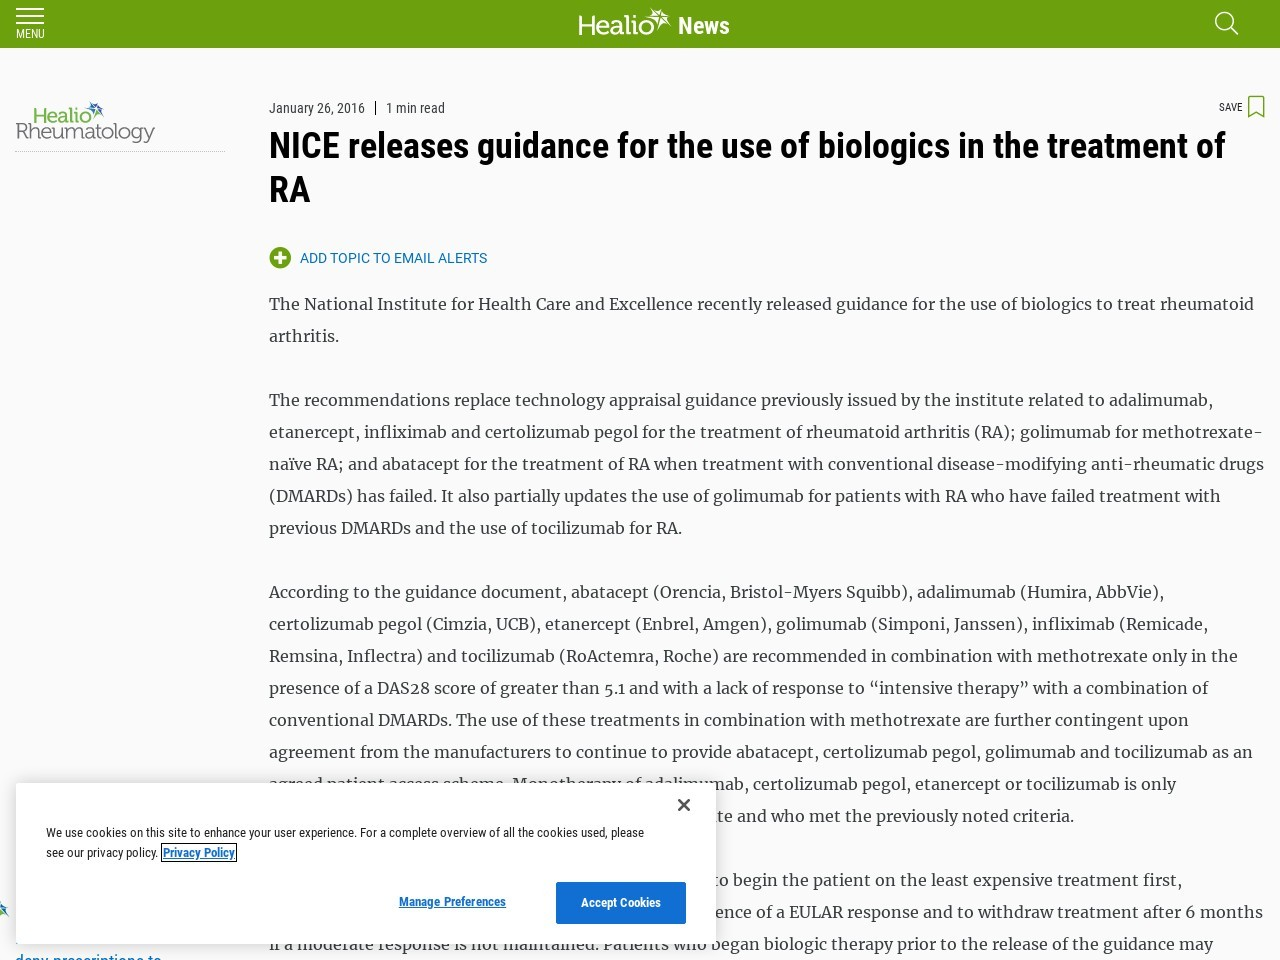 NICE releases guidance for the use of biologics in the treatment of RA